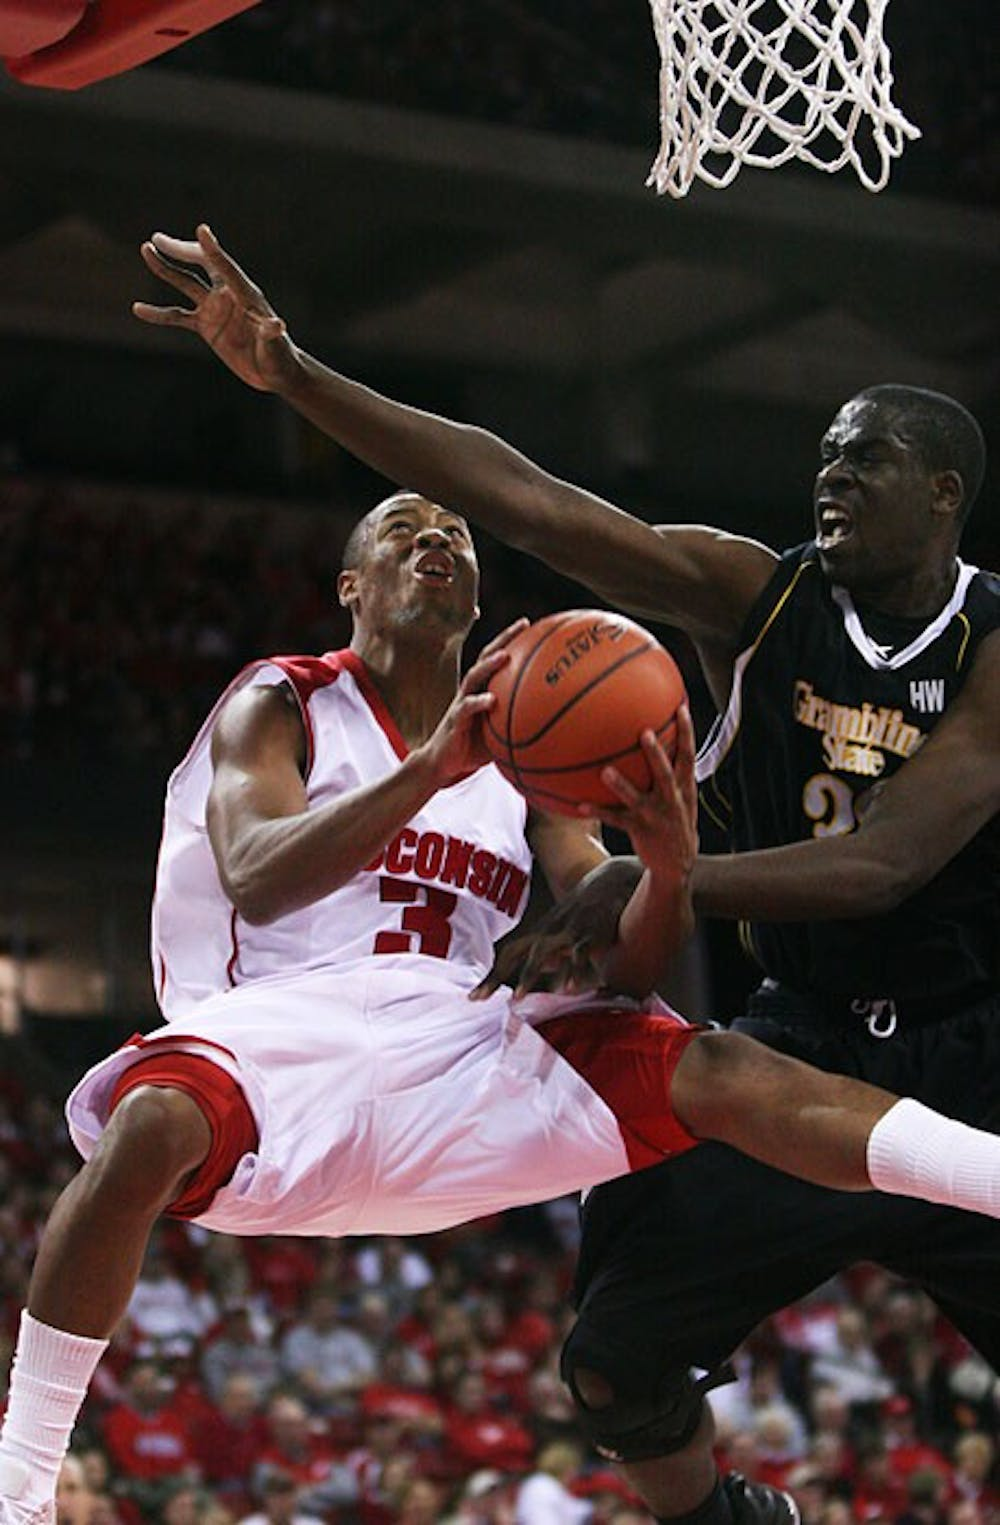 No letdown for UW with easy lopsided win over Grambling